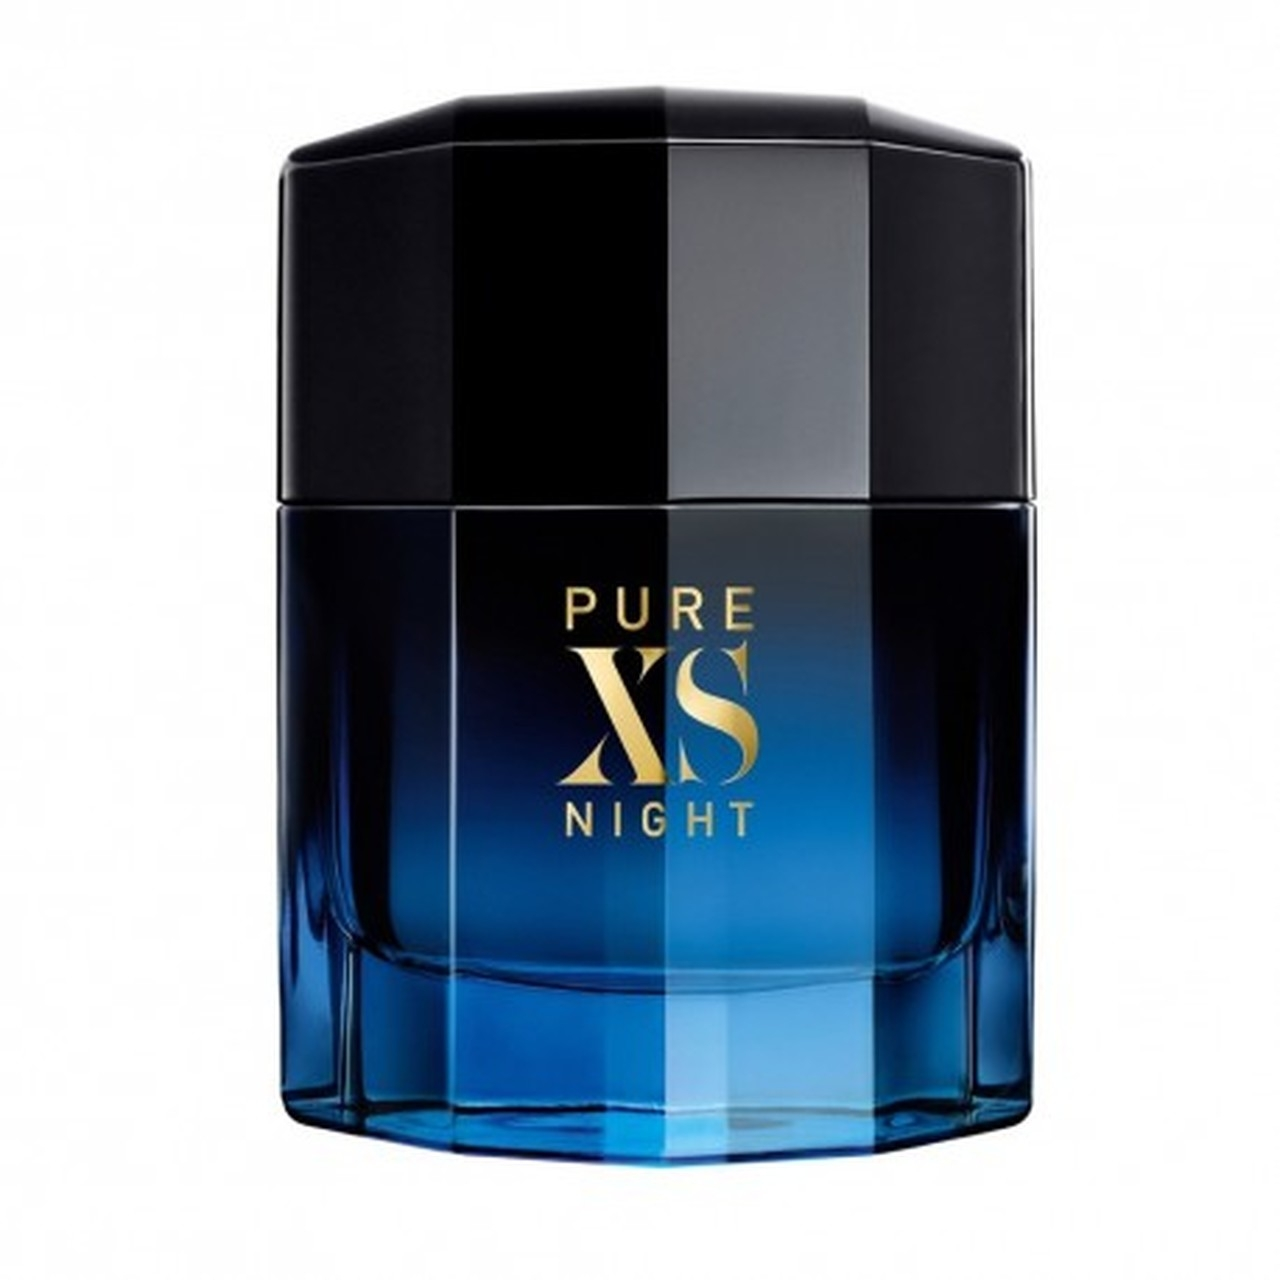 Paco Rabanne Pure XS Night (M) edp 100ml